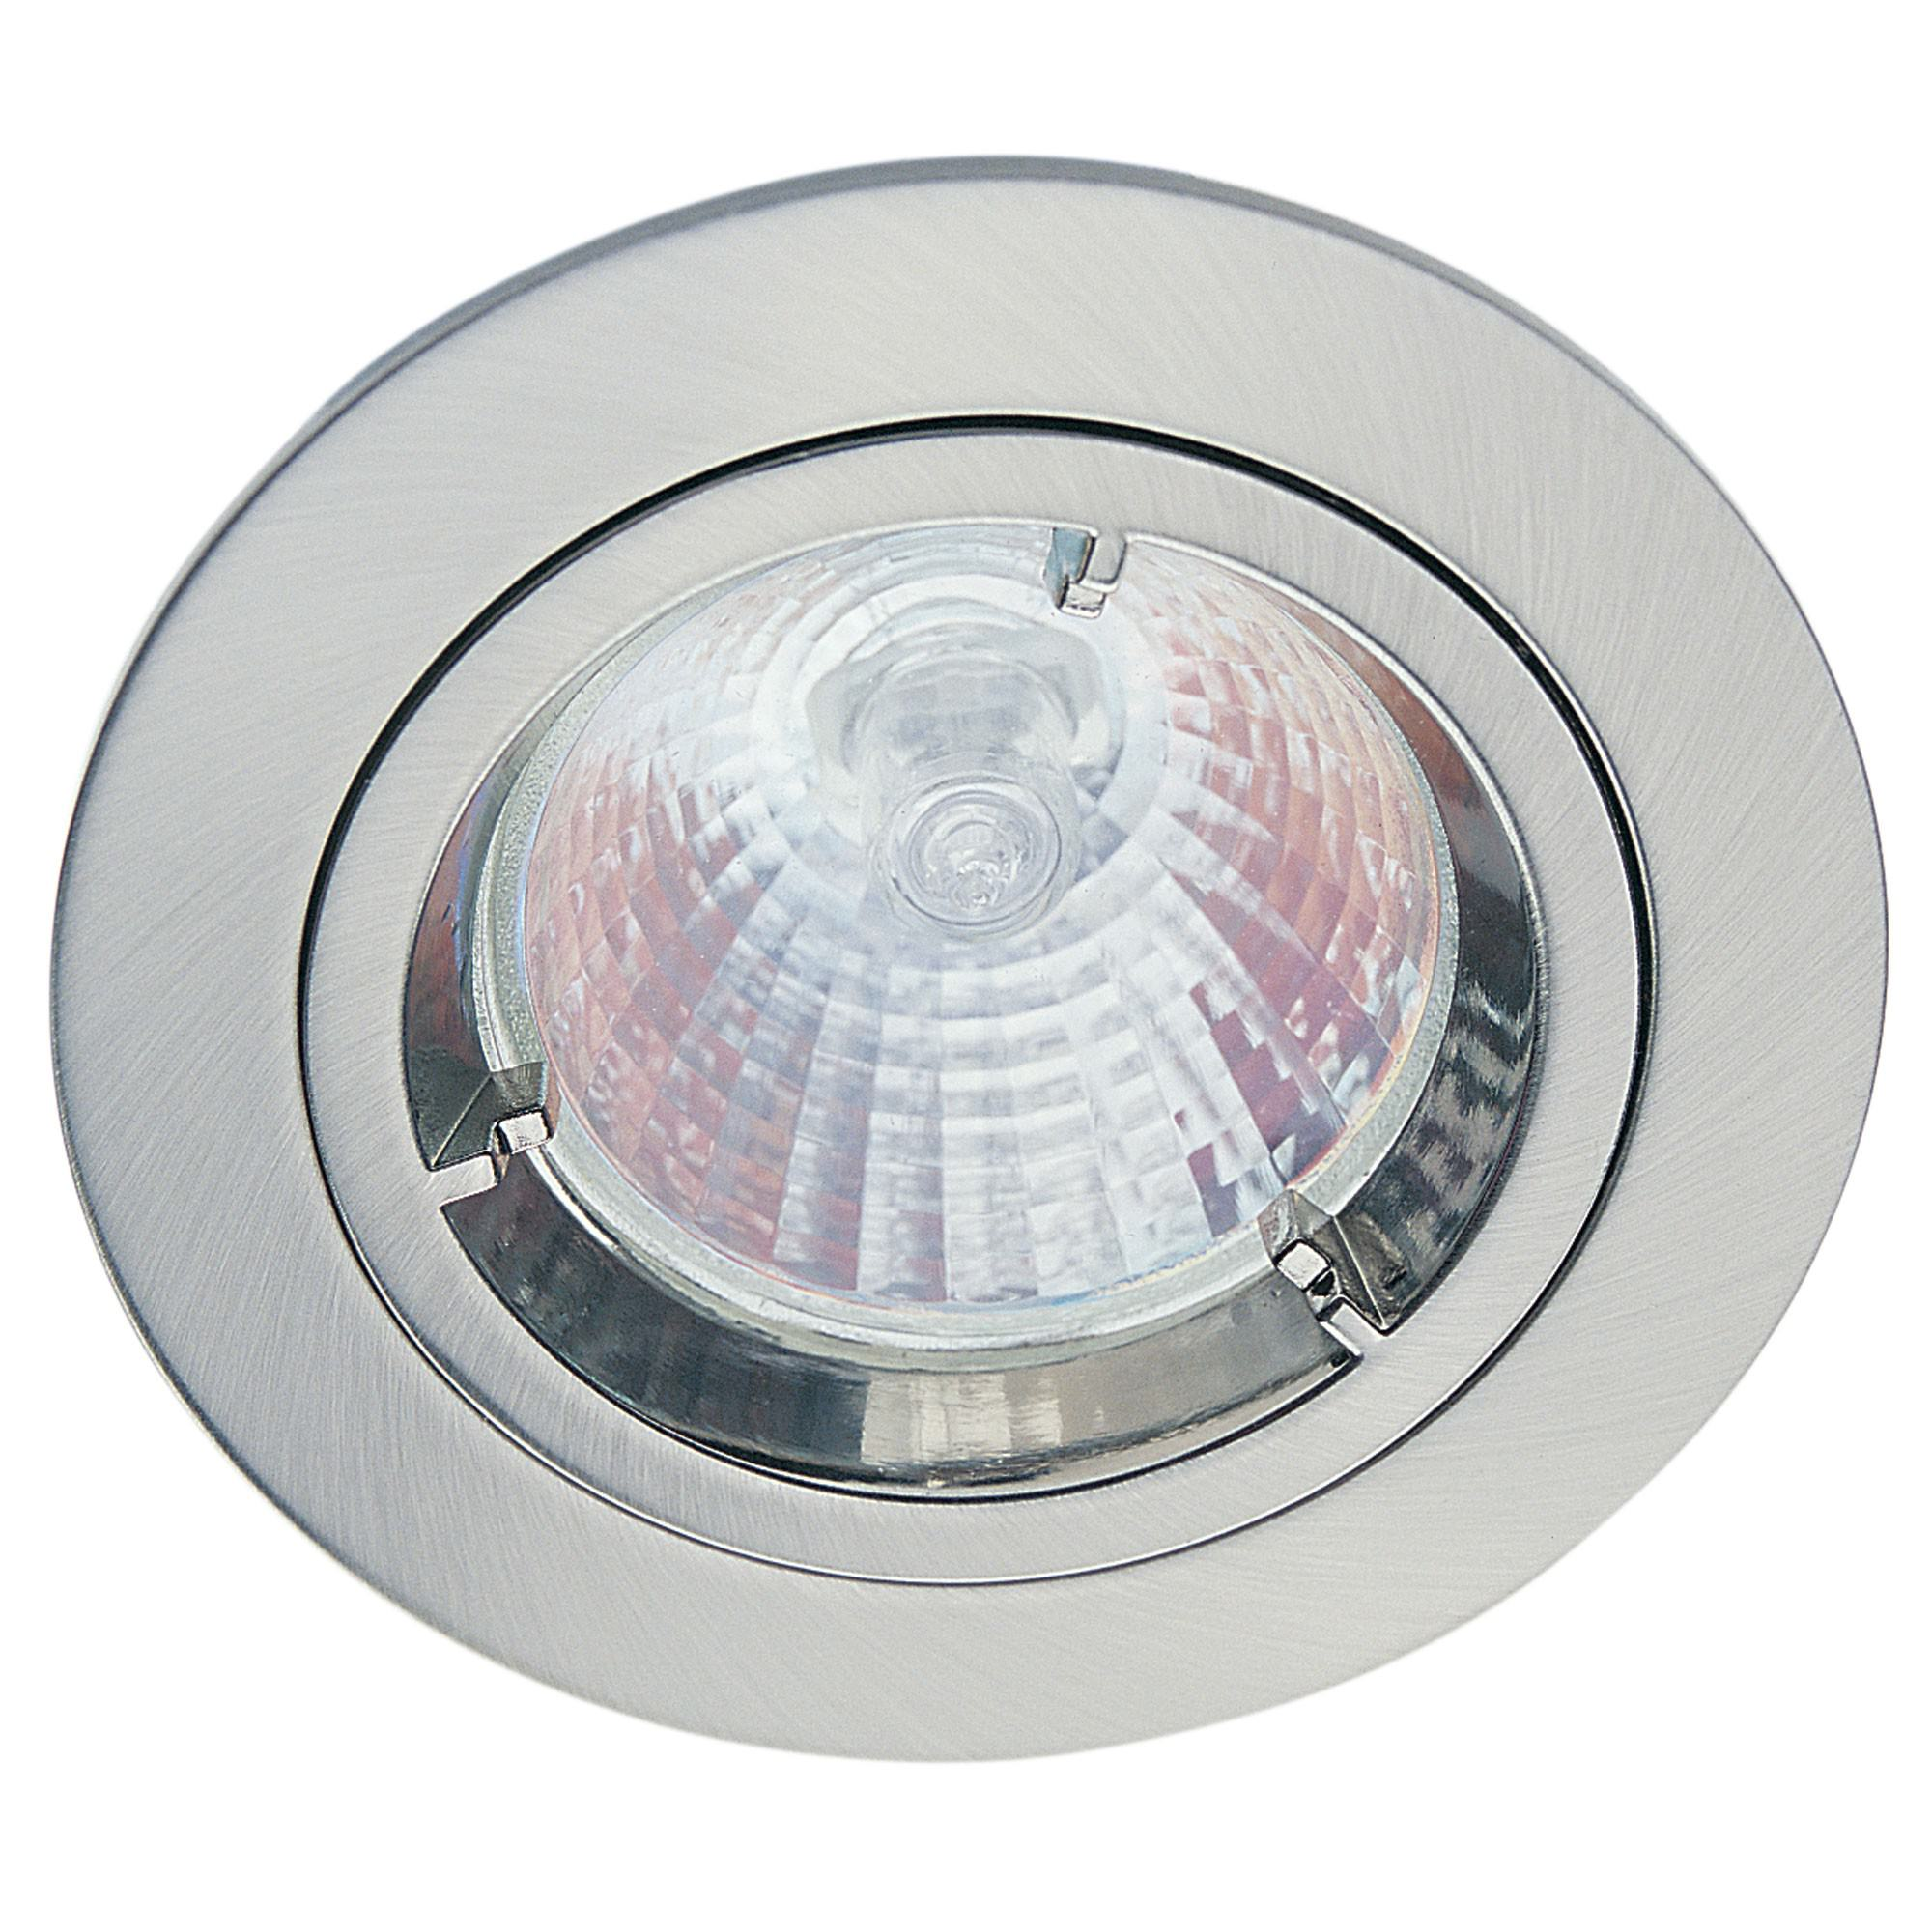 Allison Fixed Downlight Trim, Brushed Chrome (LF4800BCH)